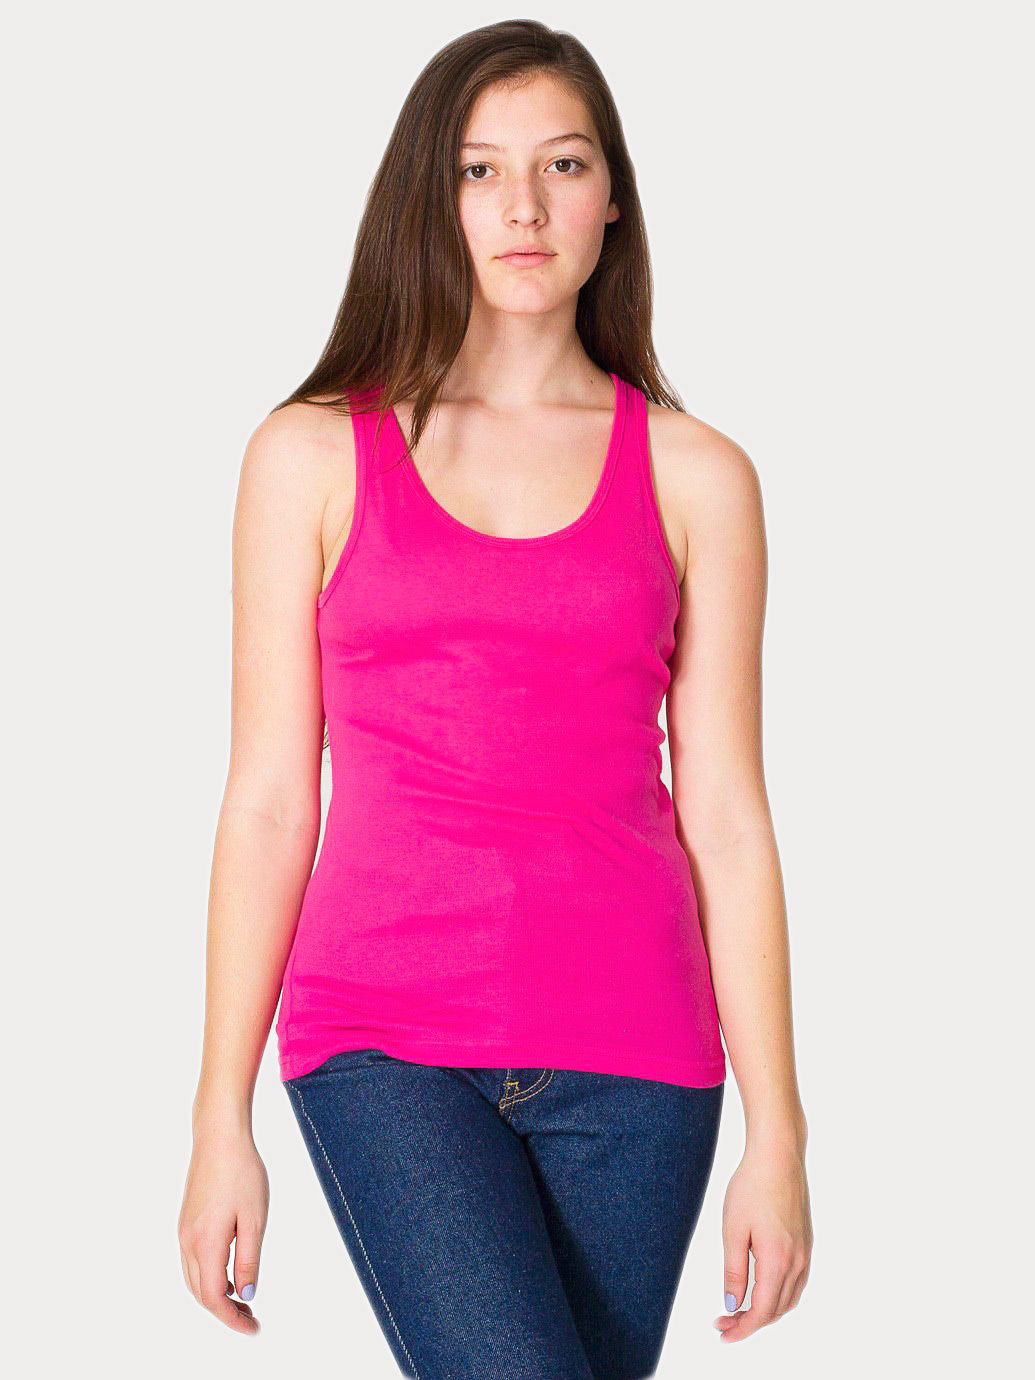 american apparel 1 Shop s&s activewear for american, apparel, cotton, -, 100%, and earn free shipping with orders over $200 one and two-day shipping options available.